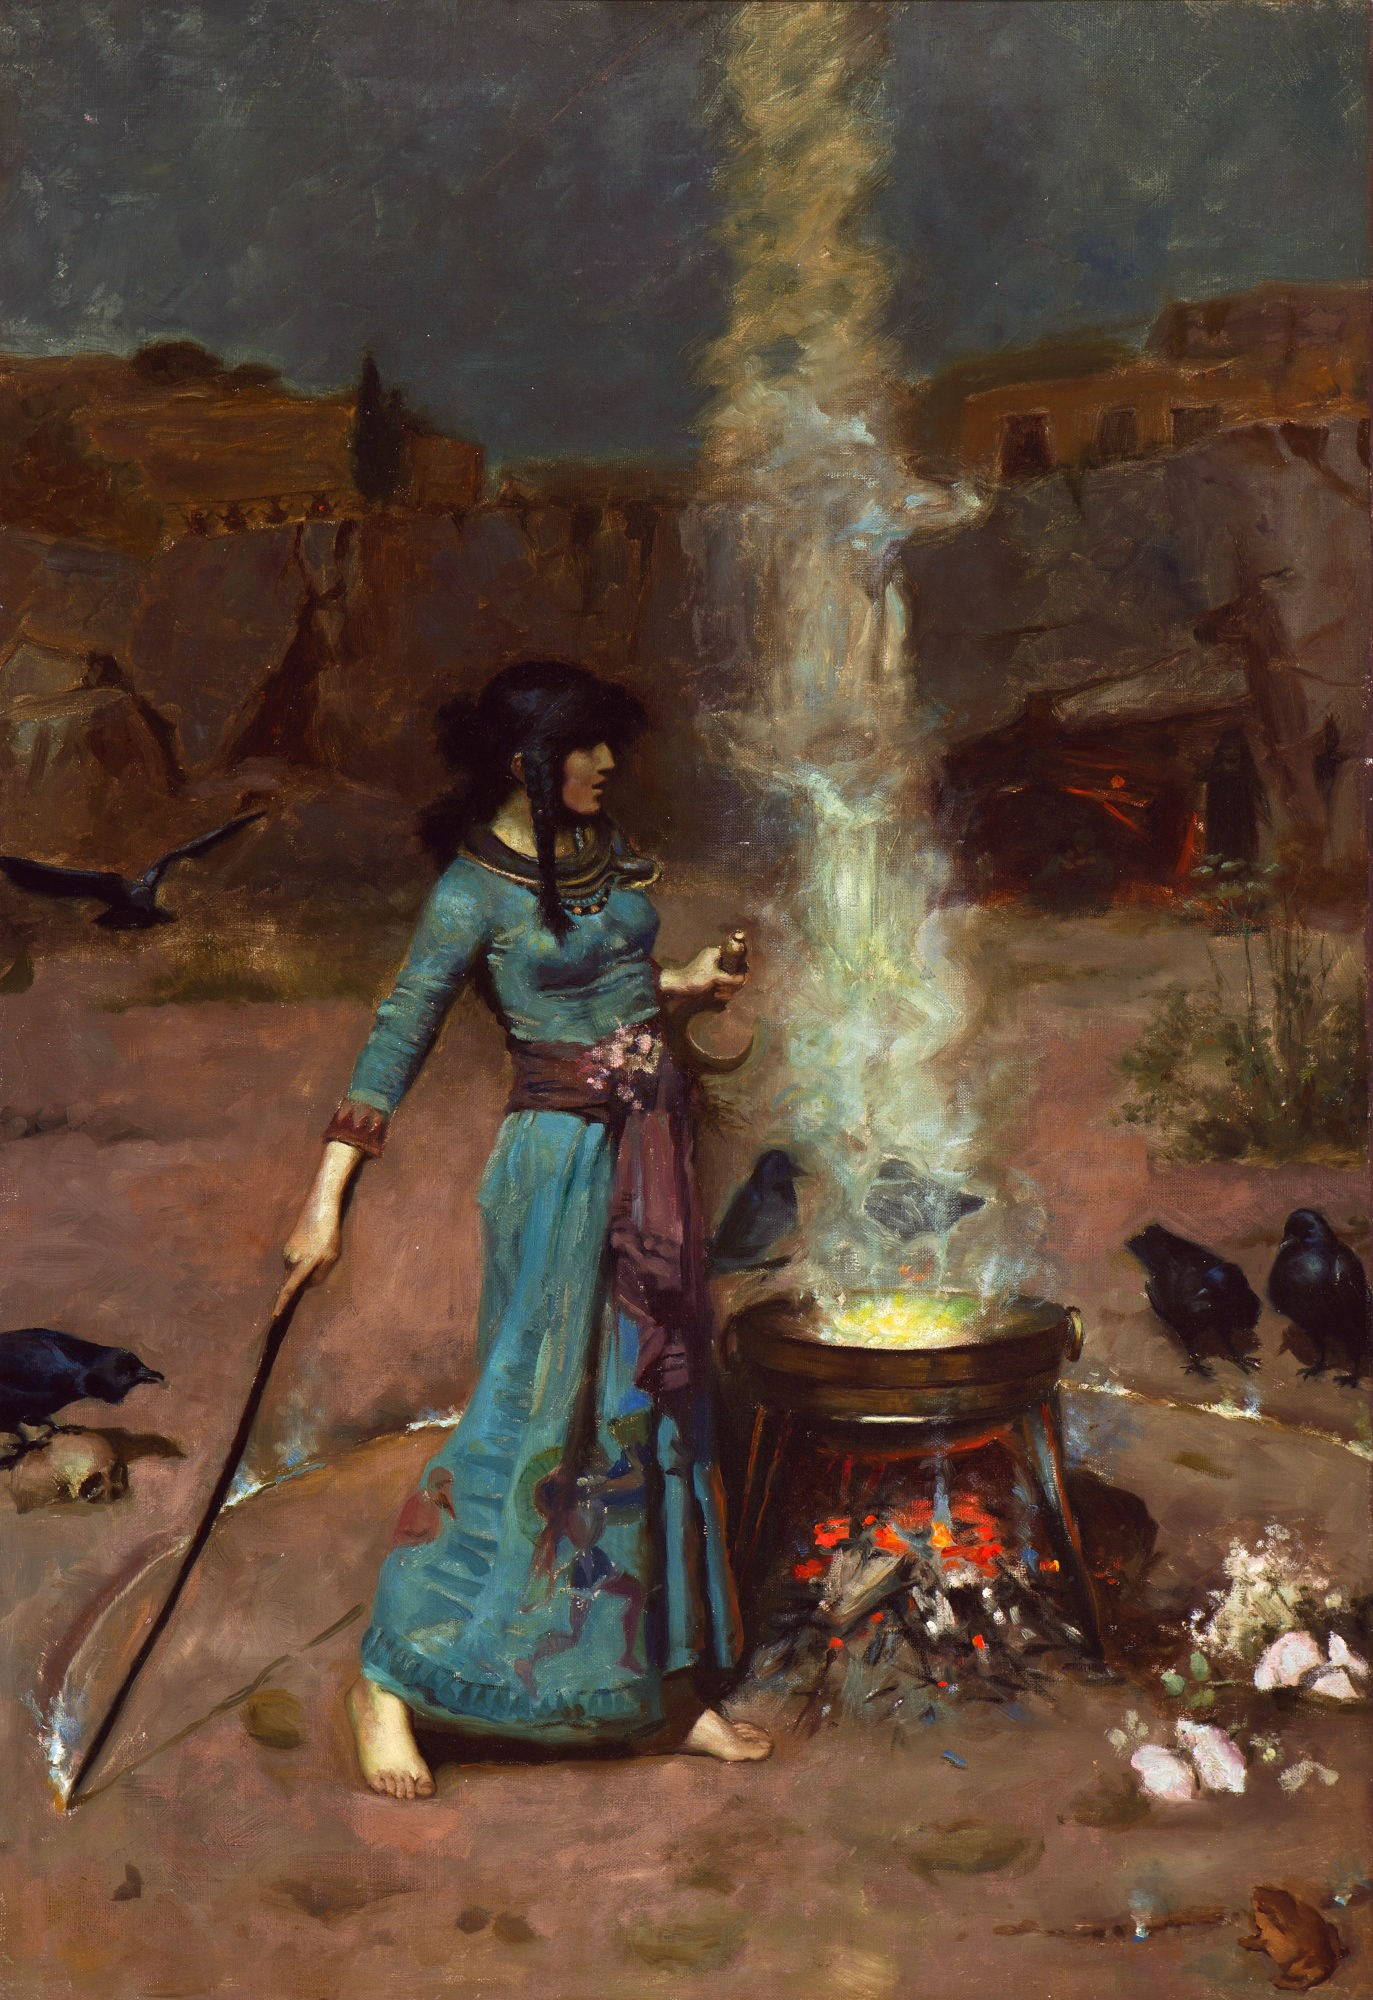 """The Magic Circle"" by John William Waterhouse 